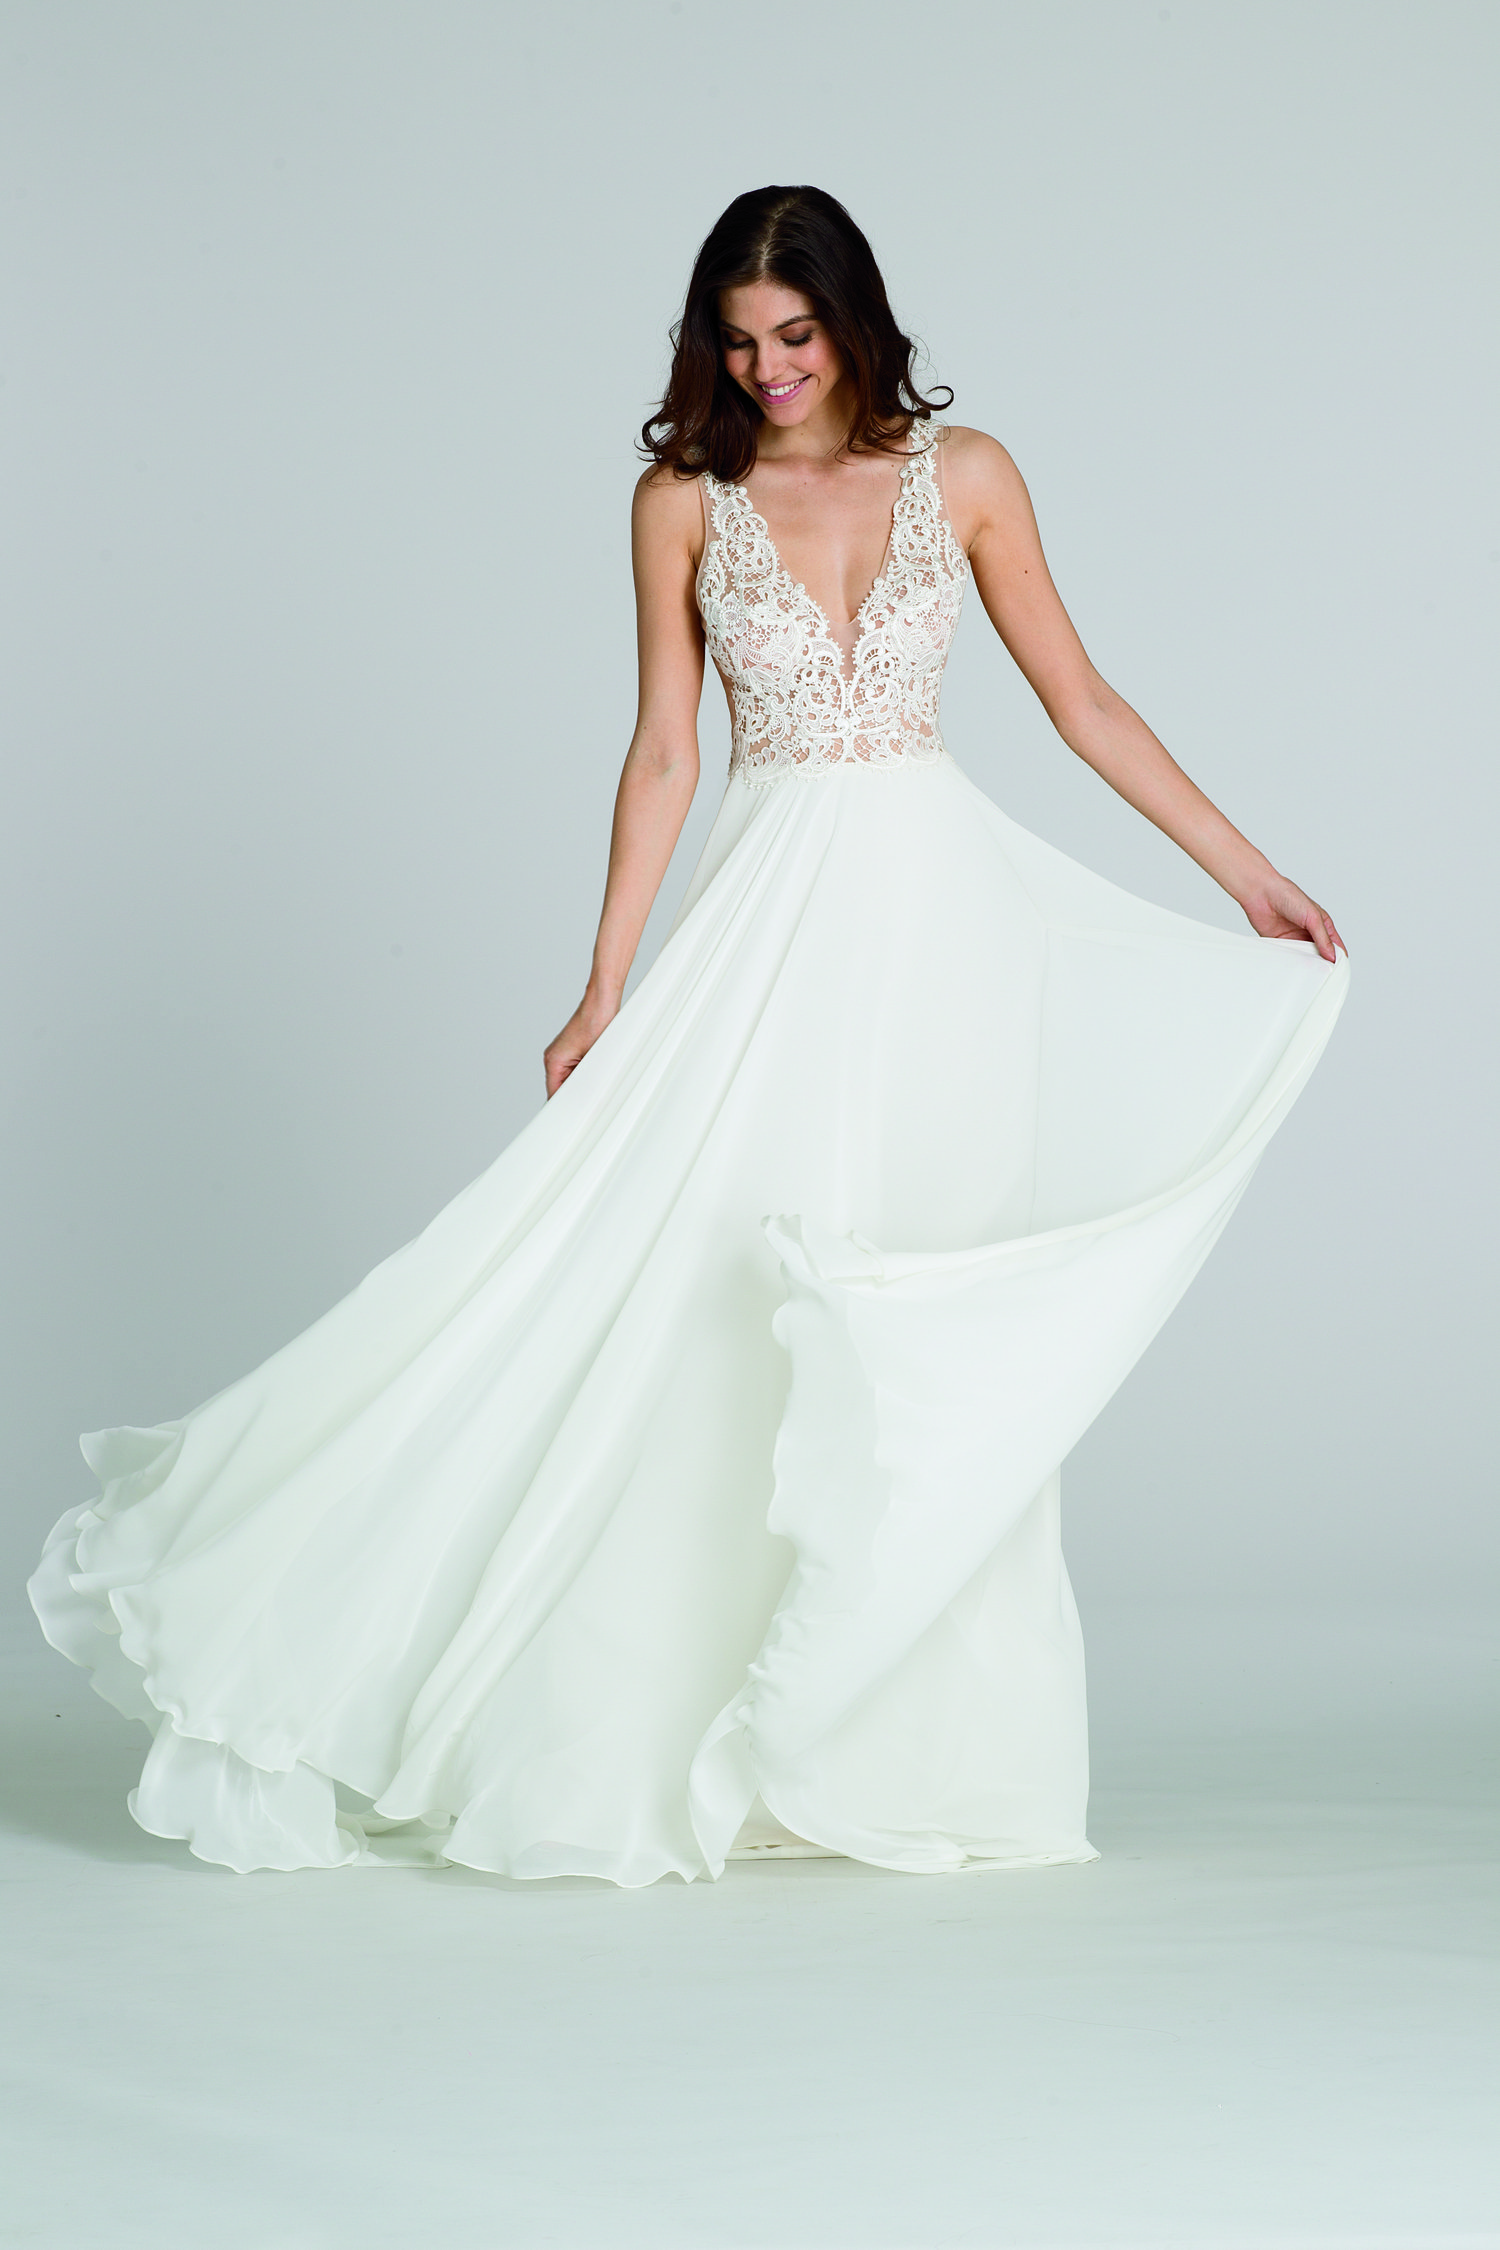 d056718a0a This bridal style will effortlessly twirl in the wind leaving your wedding  guests speechless!